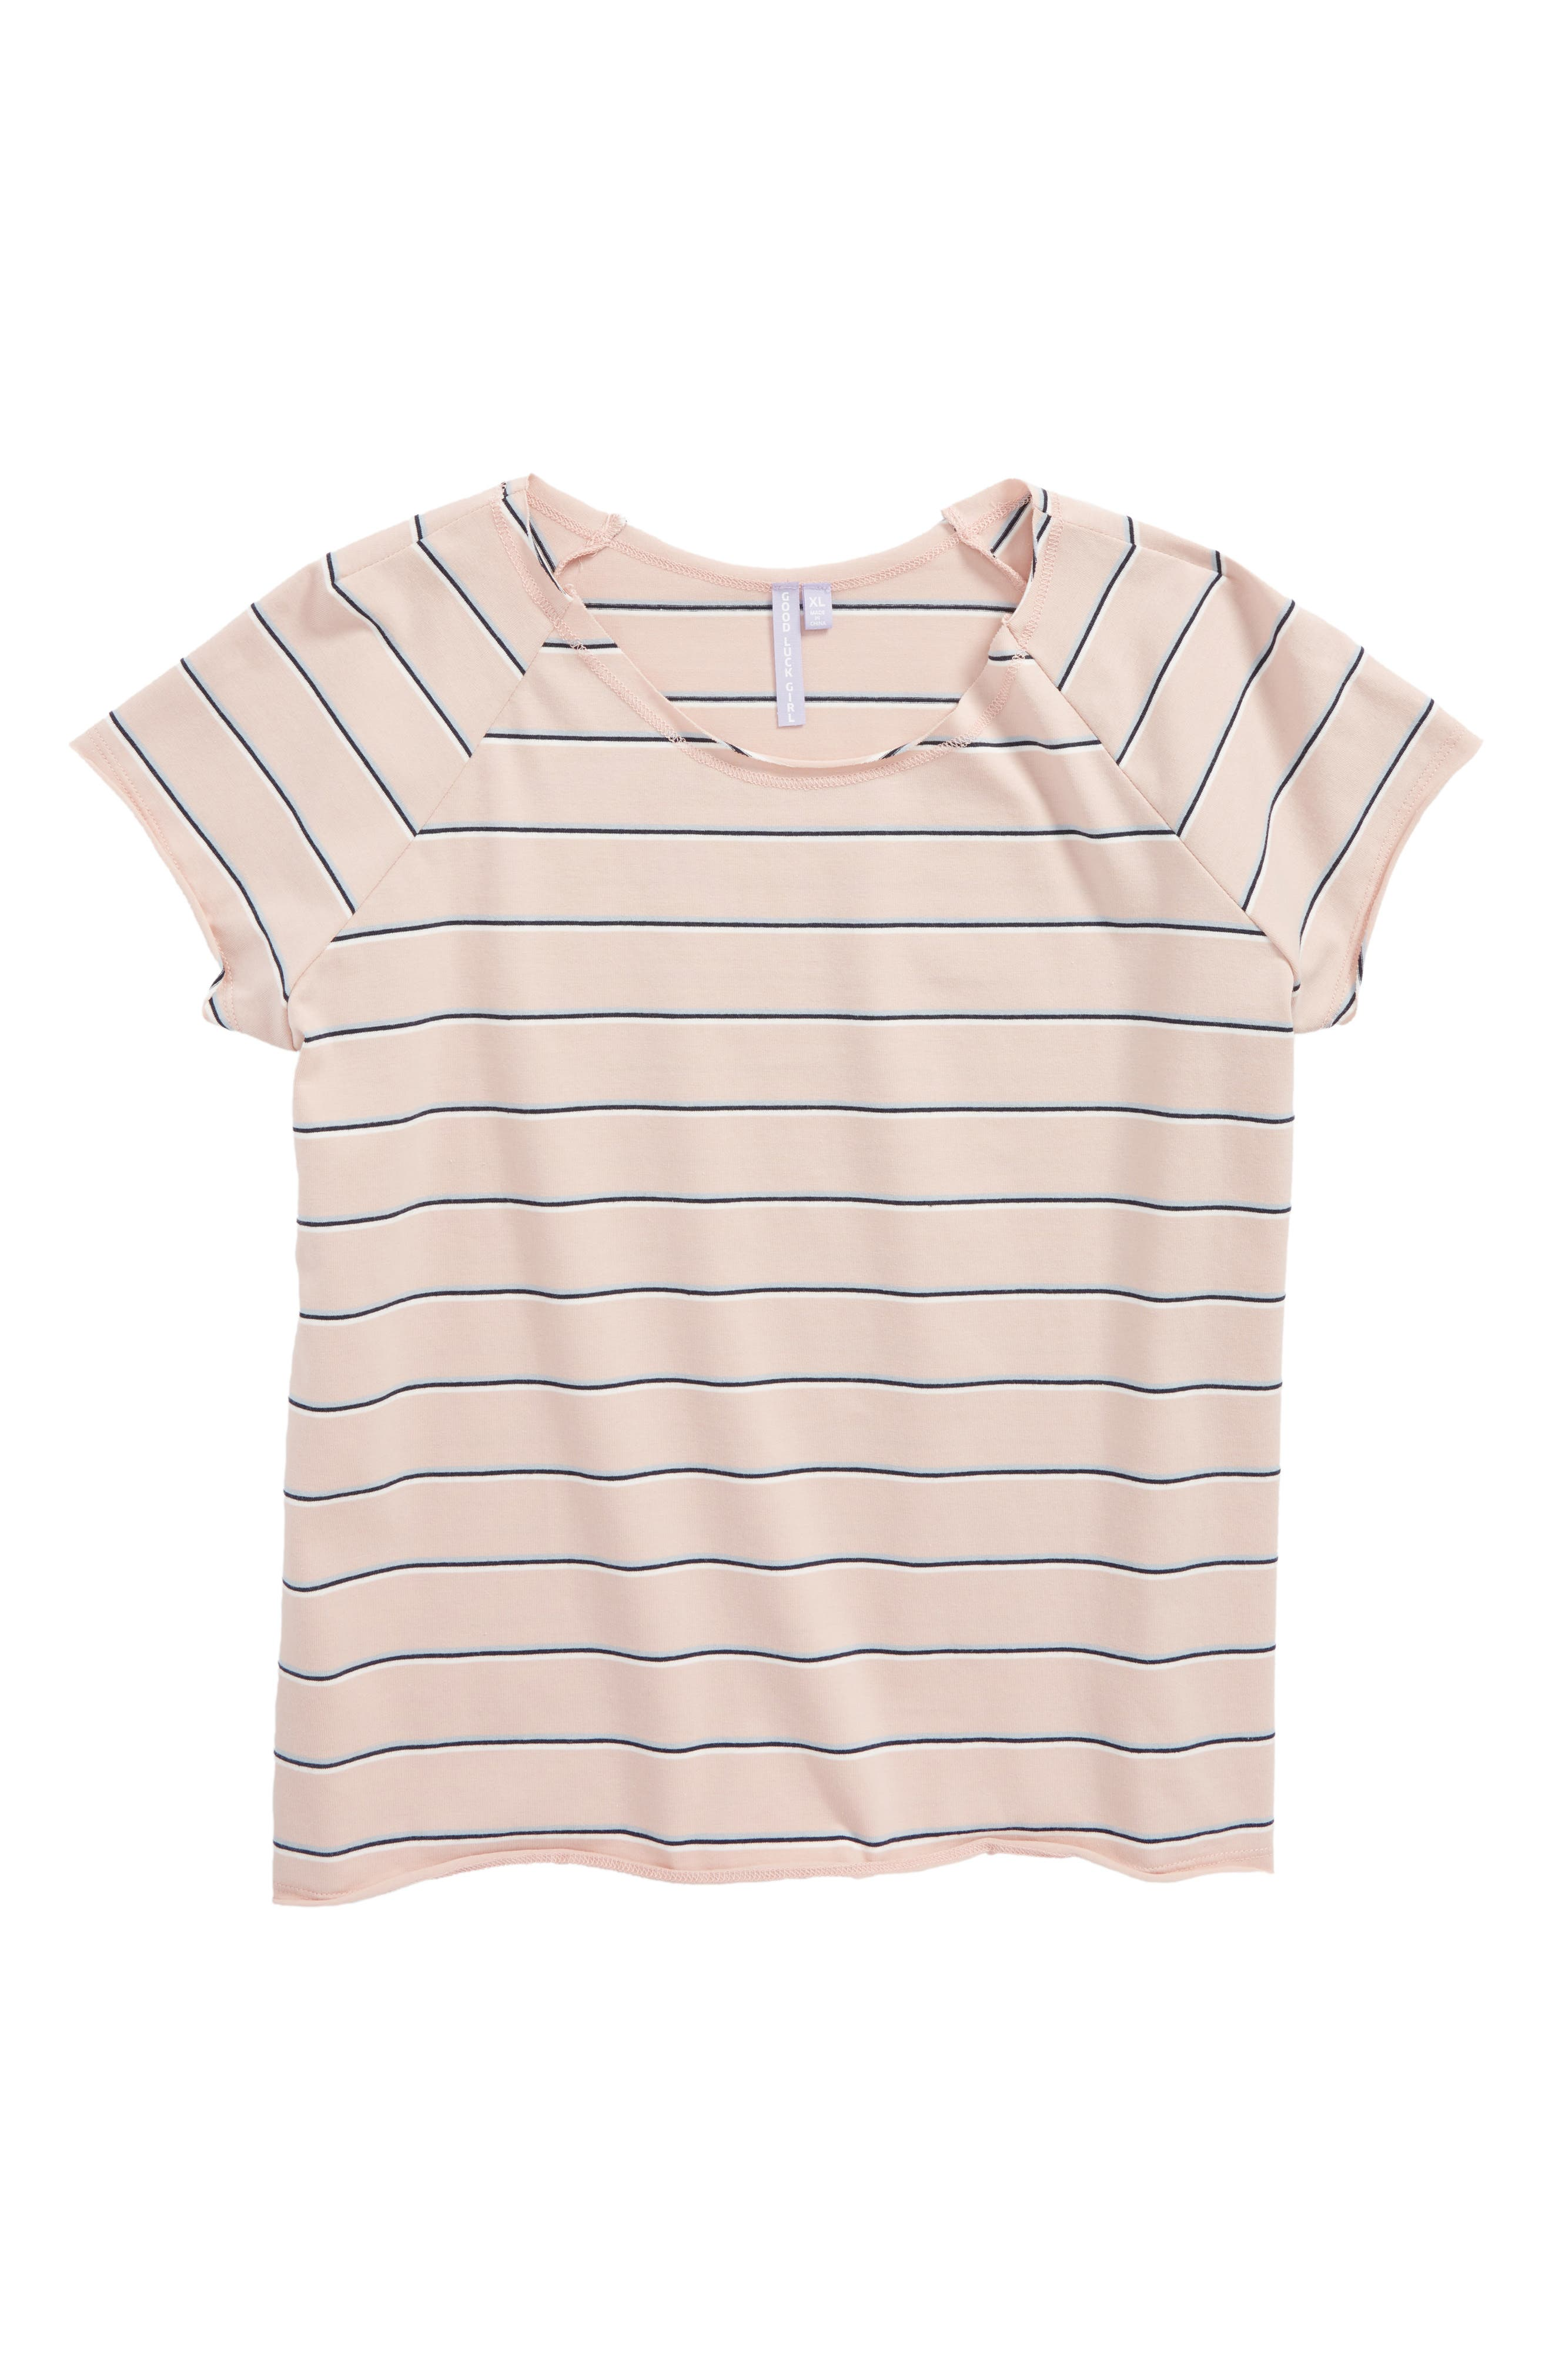 Alternate Image 1 Selected - Good Luck Gem Stripe Stretch Cotton Tee (Big Girls)